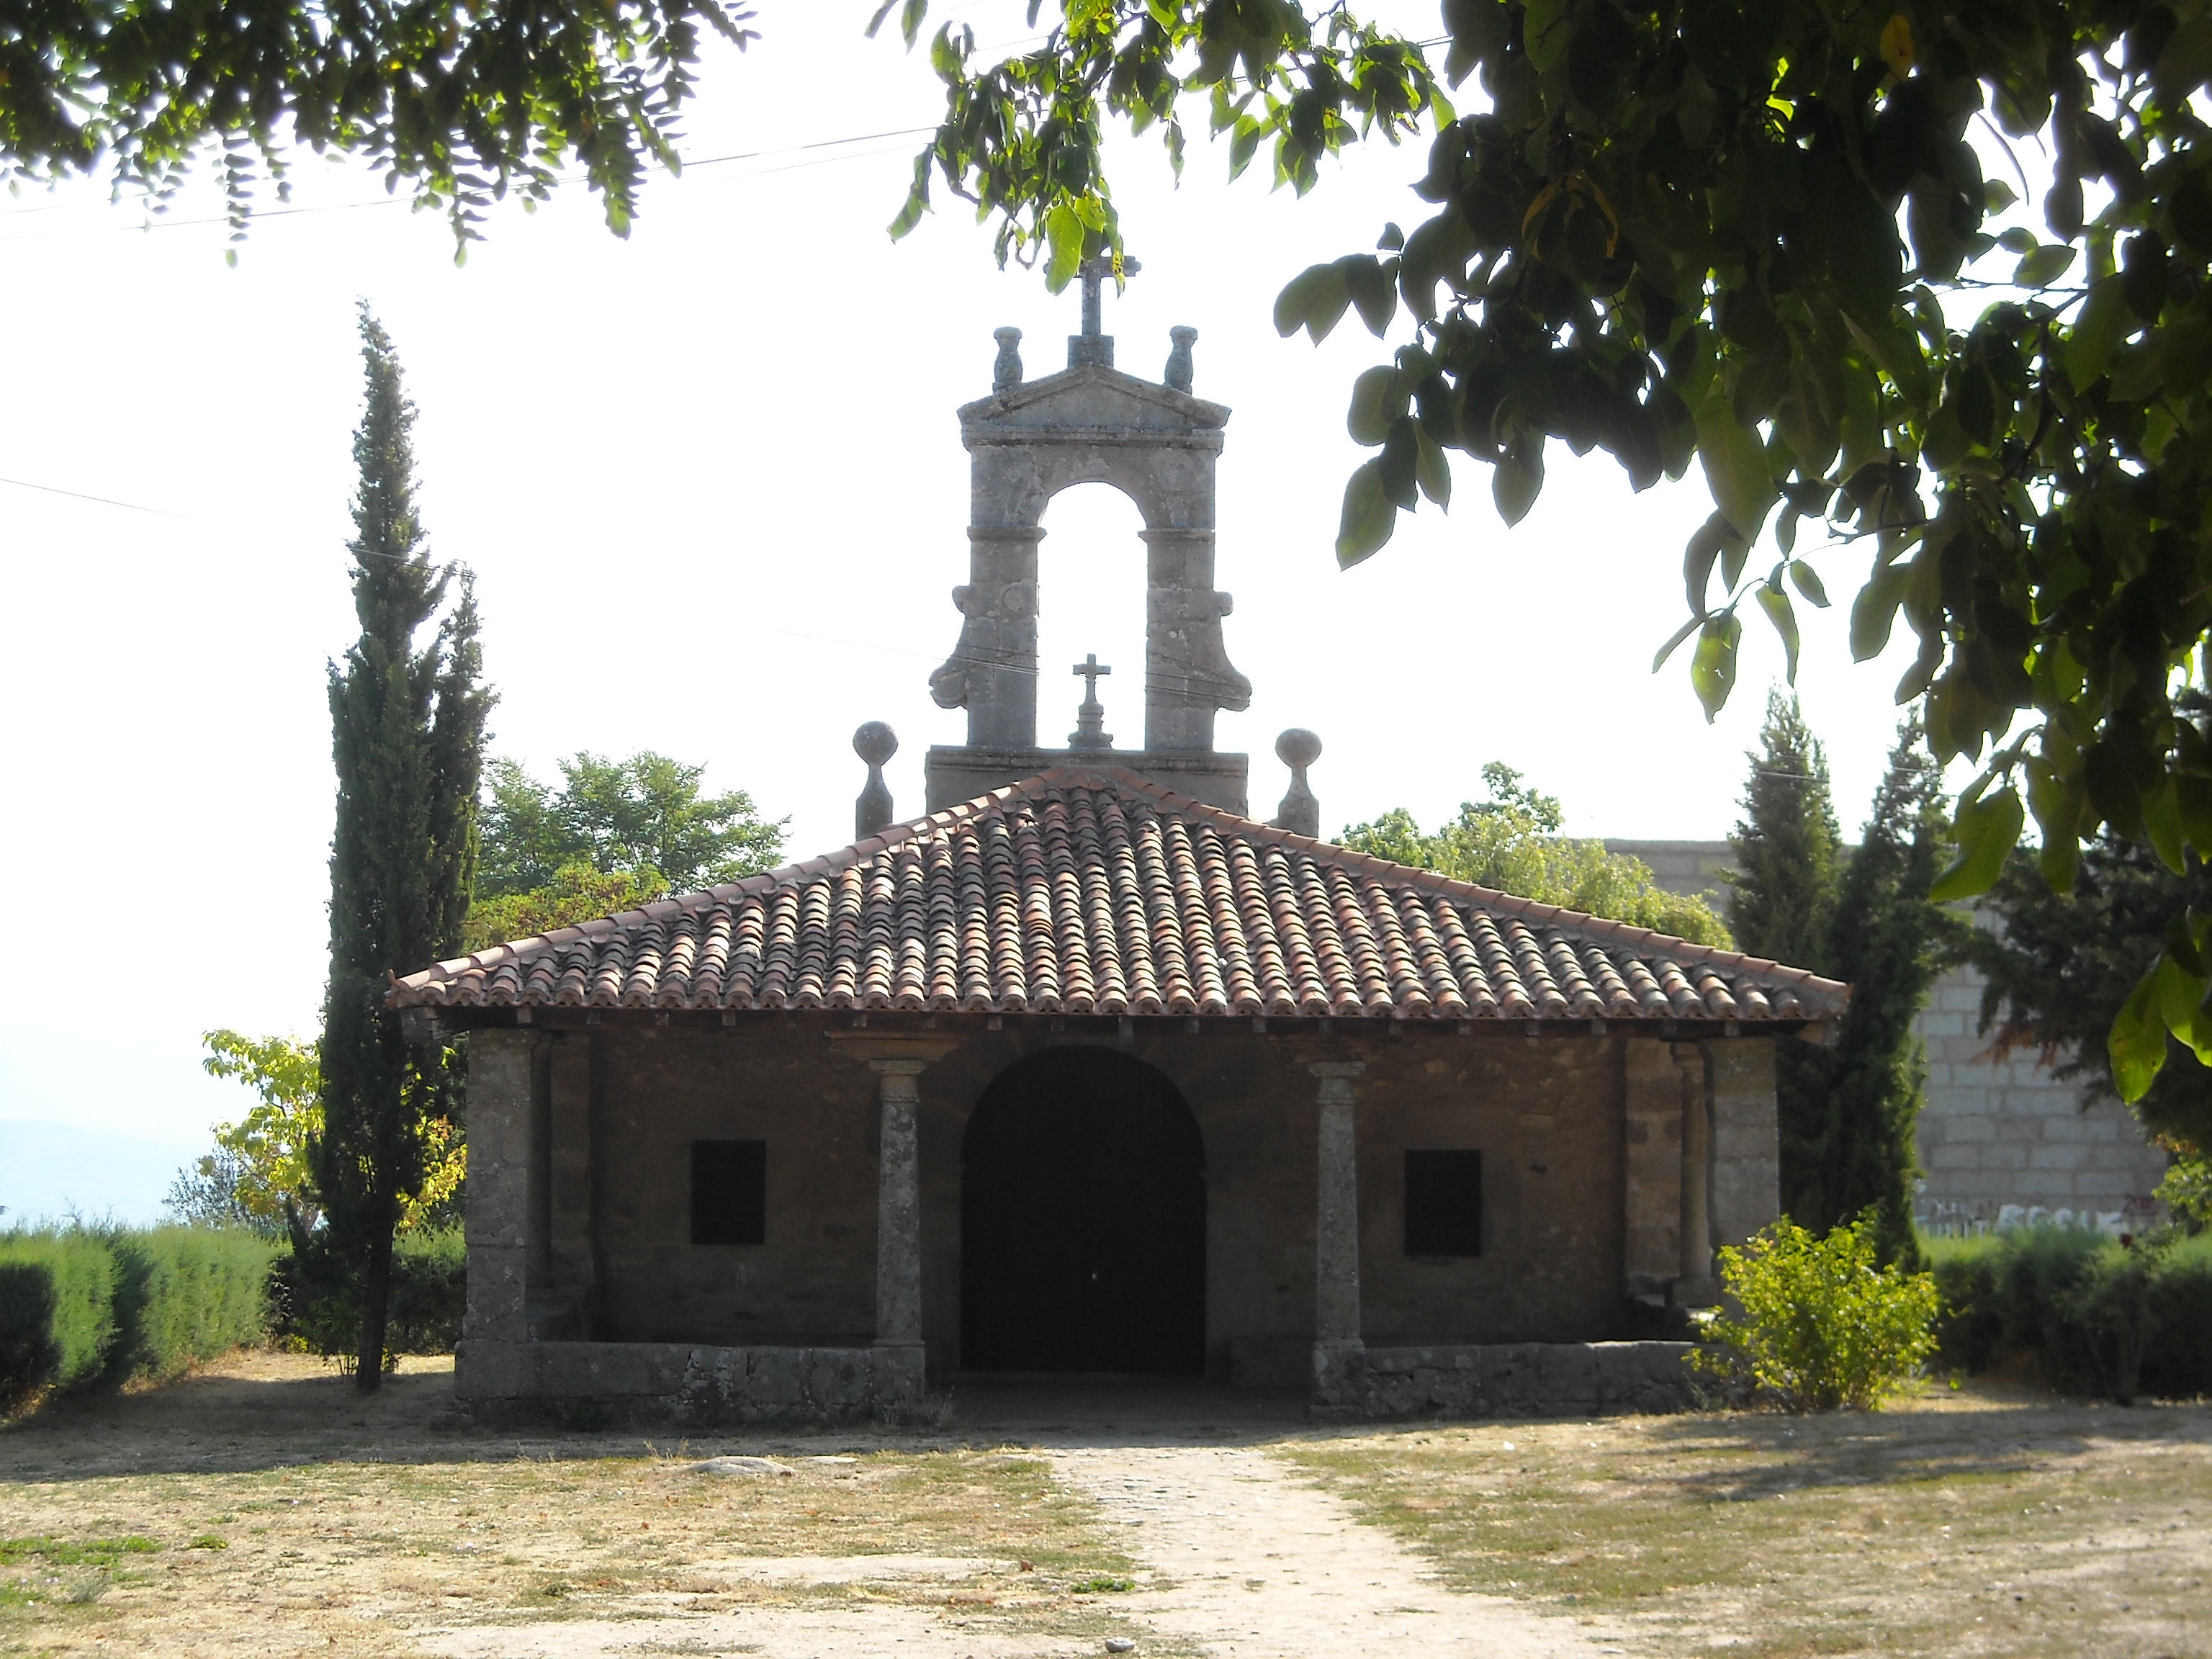 https://upload.wikimedia.org/wikipedia/commons/3/3f/Ermita_de_San_Blas%2C_La_Alberca.JPG